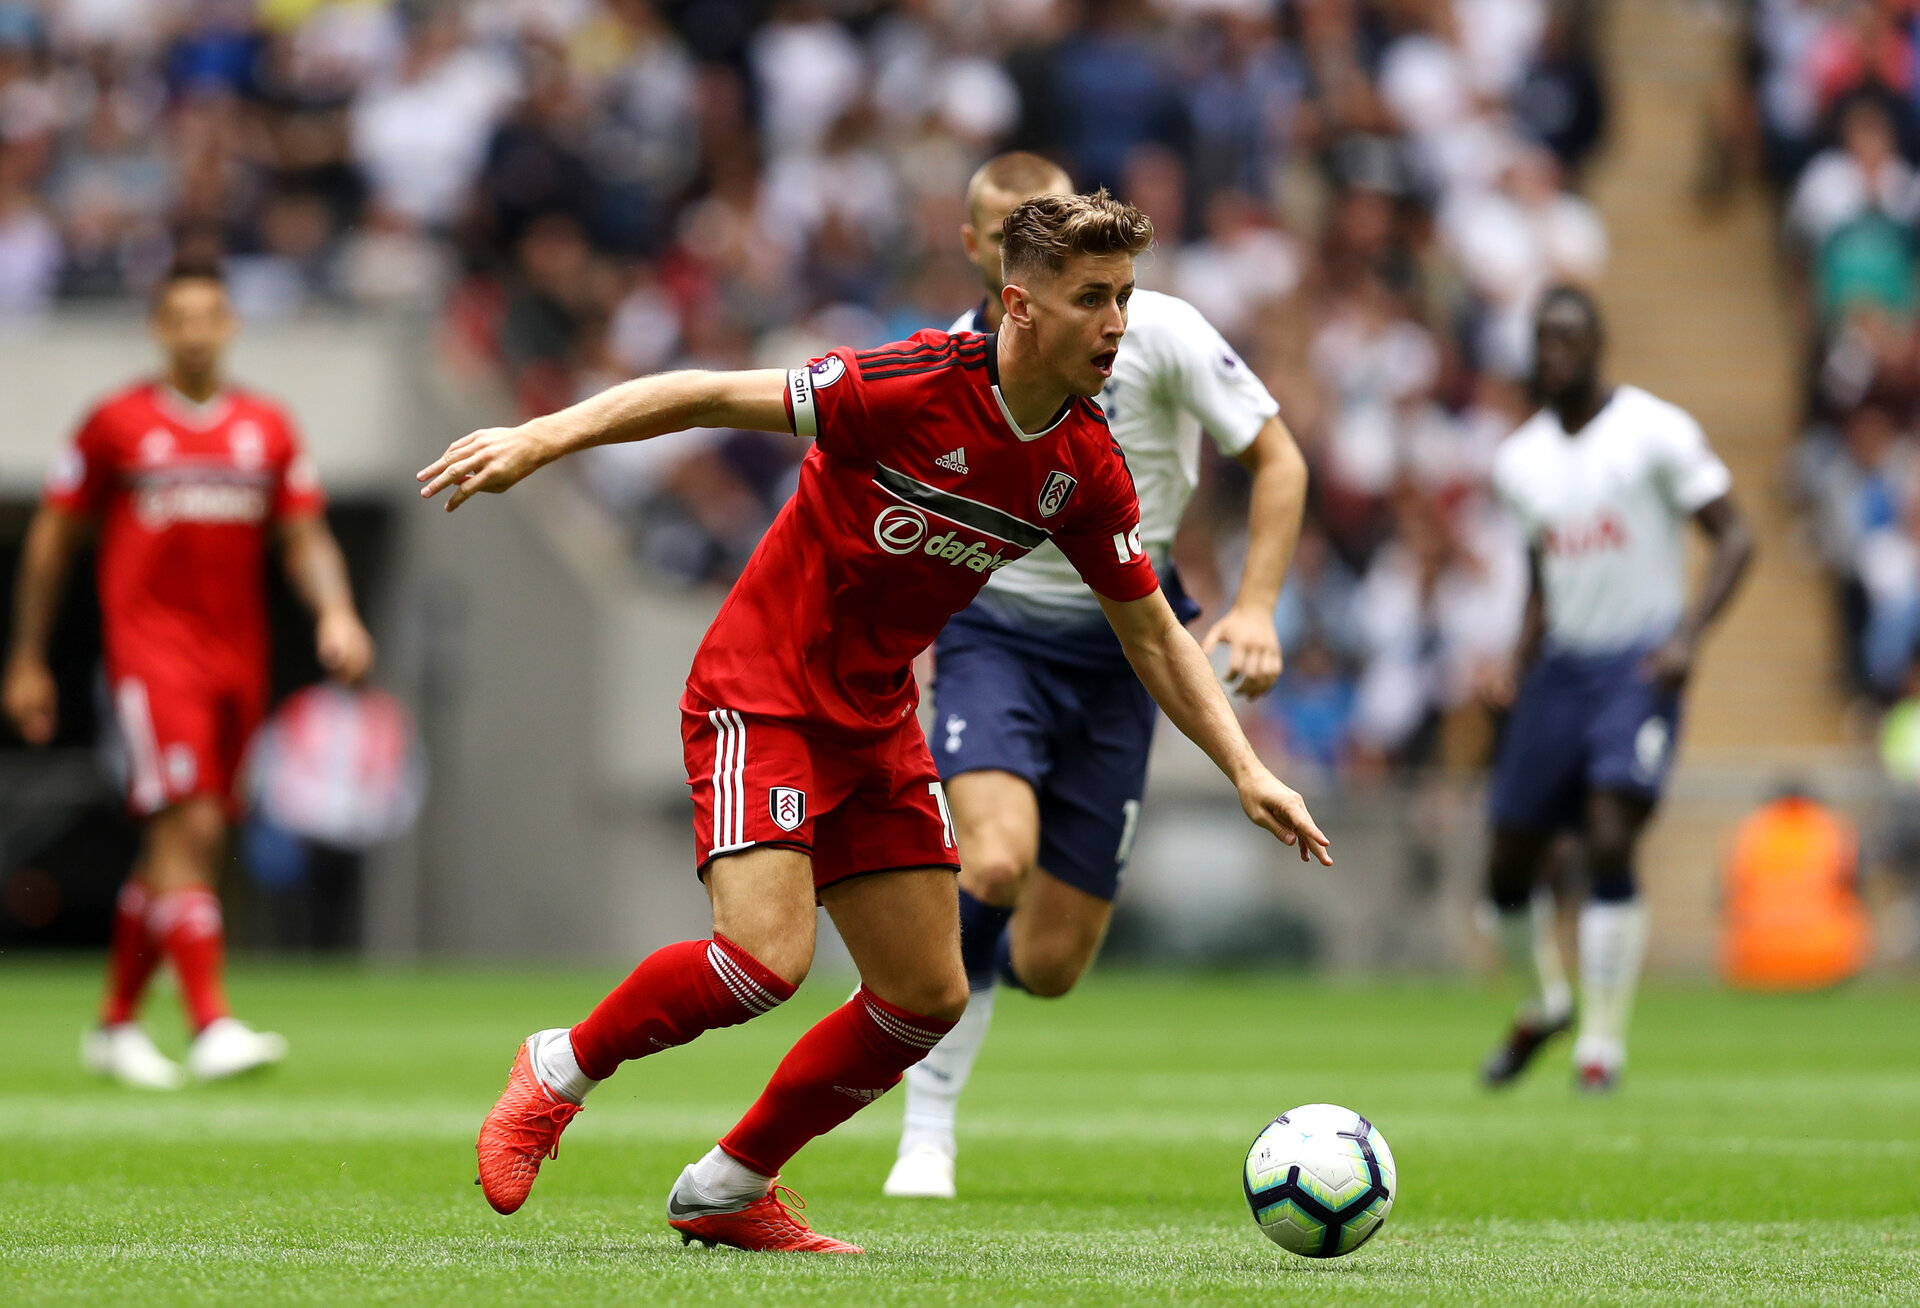 LONDON, ENGLAND - AUGUST 18:  Tom Cairney of Fulham looks to pass the ball during the Premier League match between Tottenham Hotspur and Fulham FC at Wembley Stadium on August 18, 2018 in London, United Kingdom.  (Photo by Dan Istitene/Getty Images)